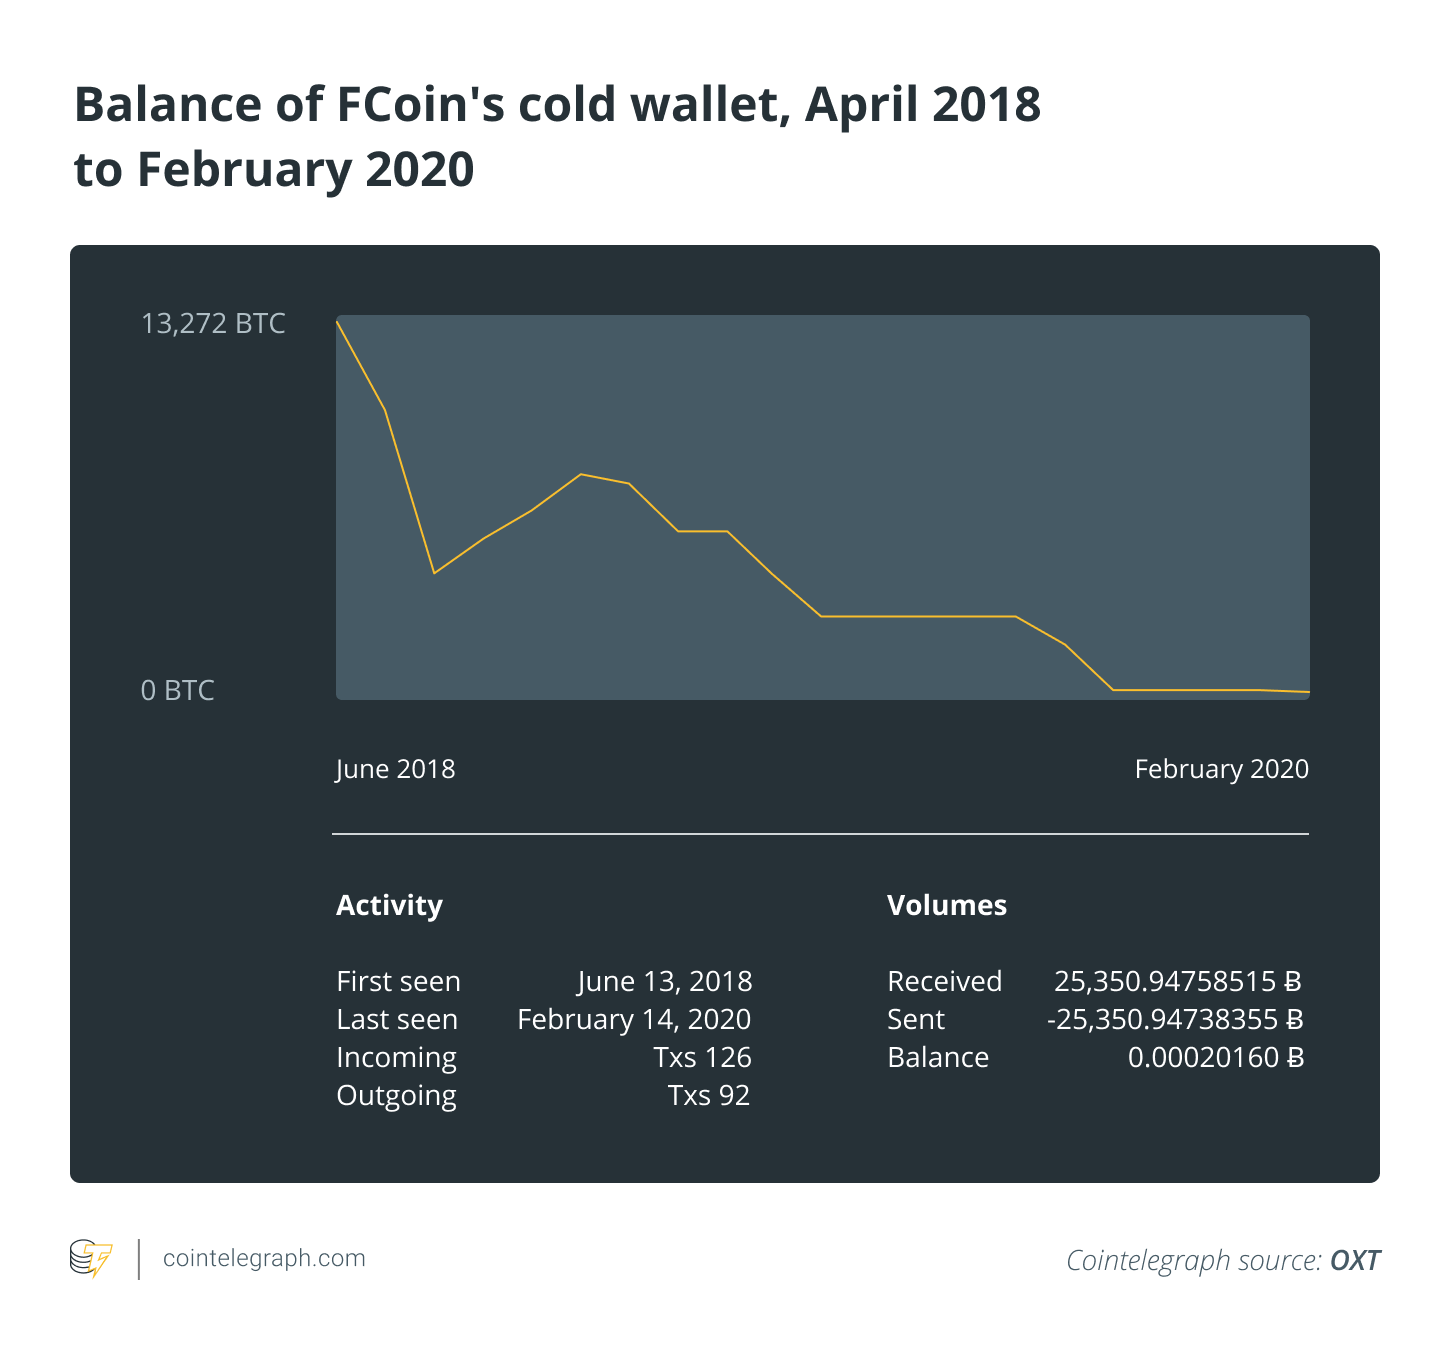 Balance of FCoin's cold wallet, April 2018 to February 2020